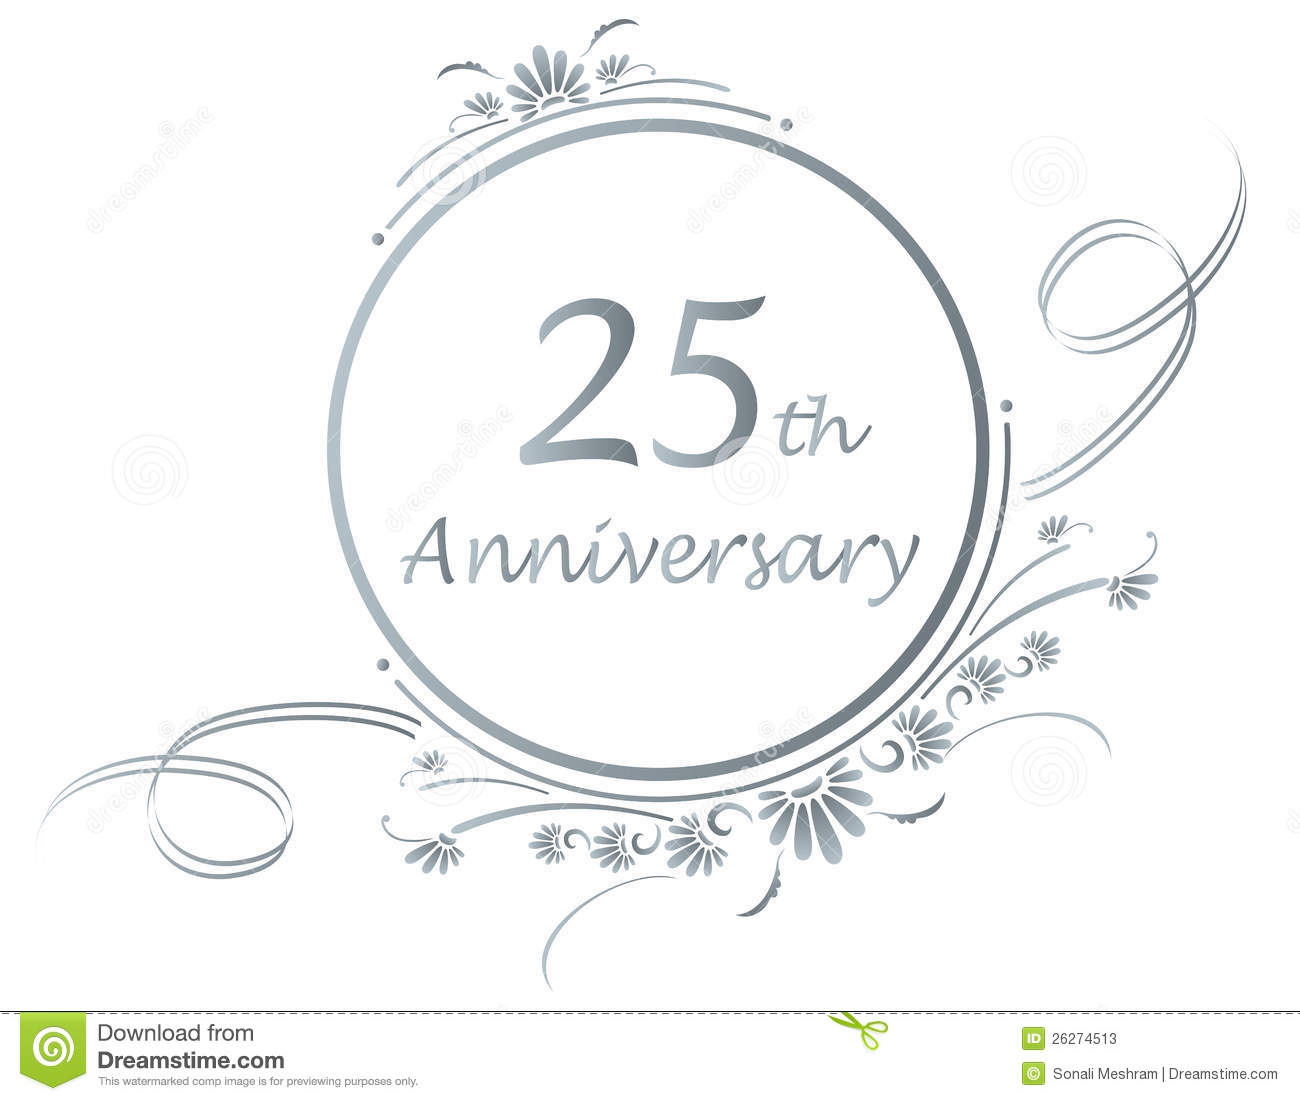 Happy 25th anniversary clipart picture transparent Silver Anniversary Clipart - Clipart Kid picture transparent